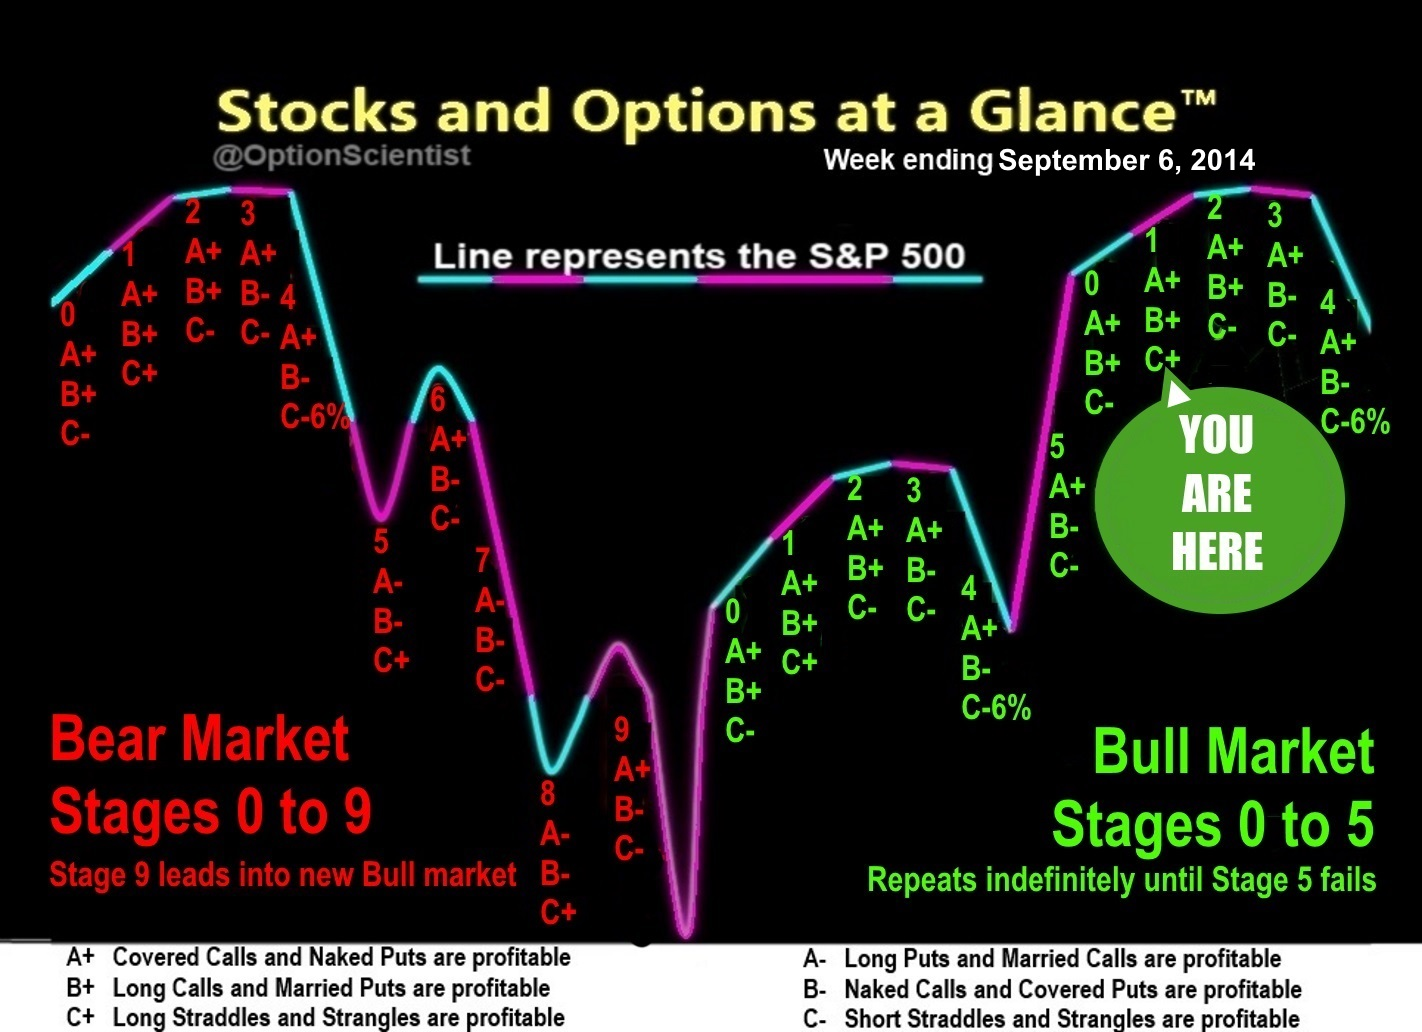 Stocks and Options at a Glance 2014-09-06